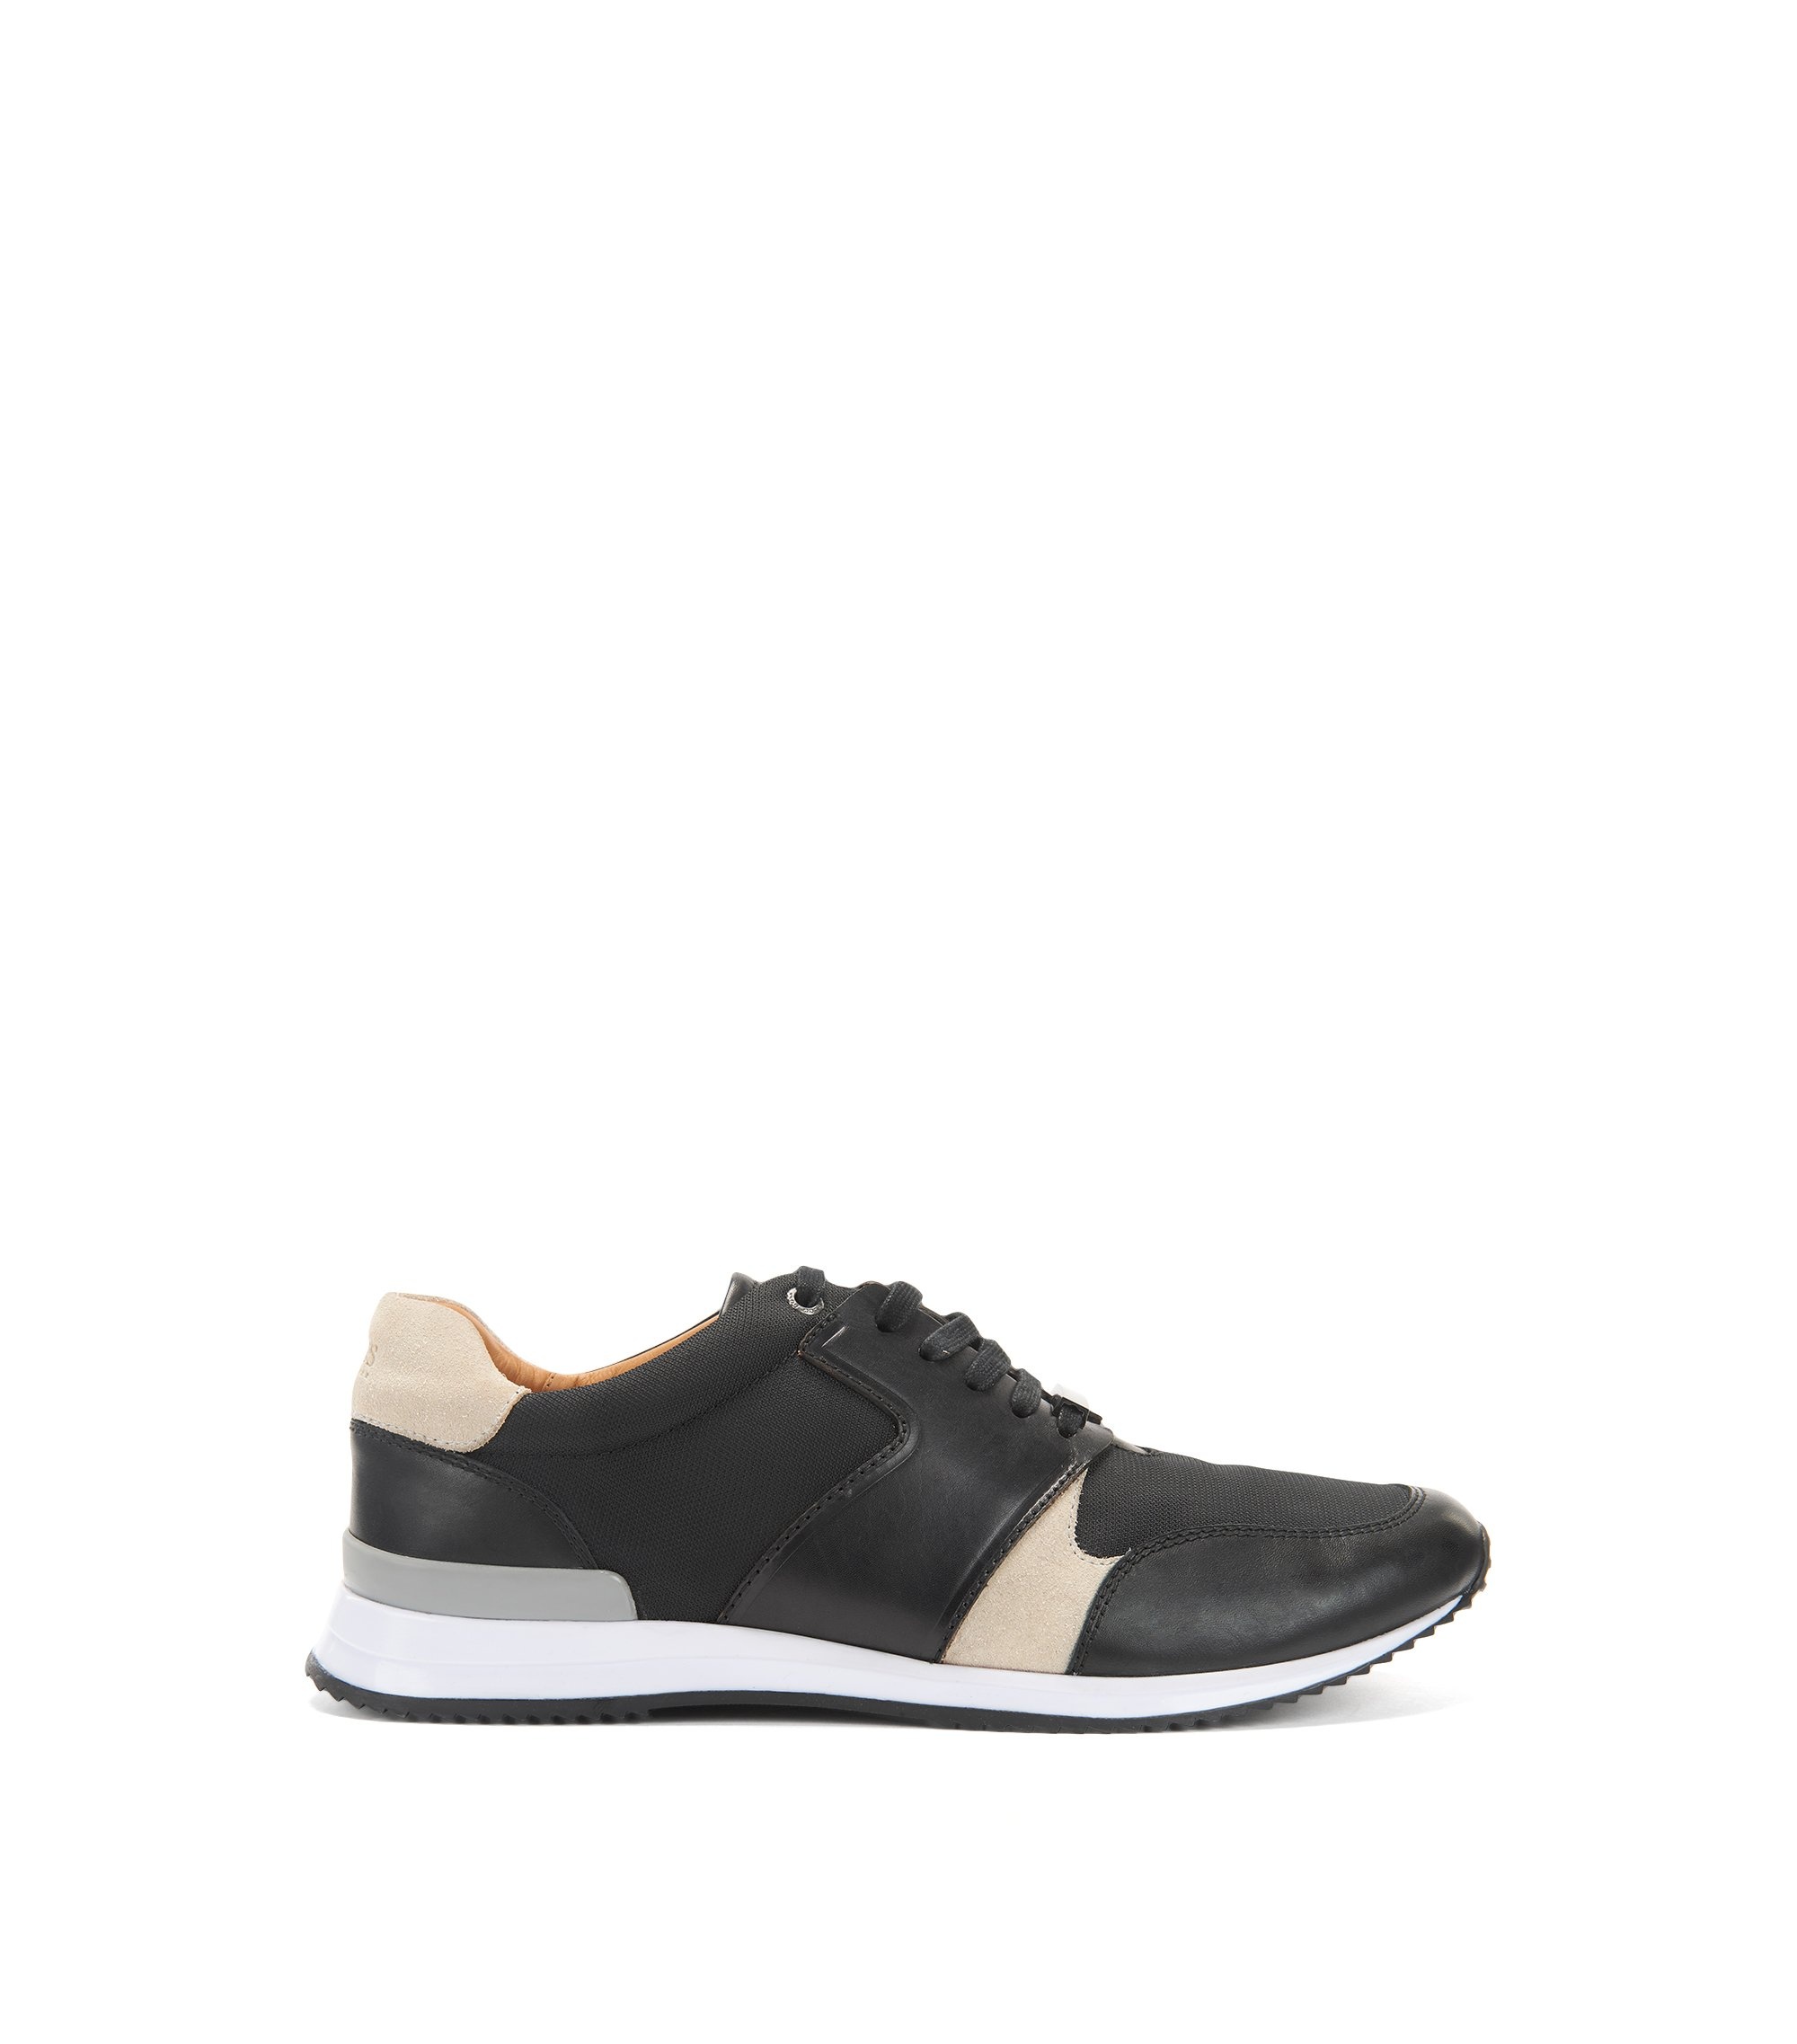 Sneakers stile runner con tomaia ibrida, Nero